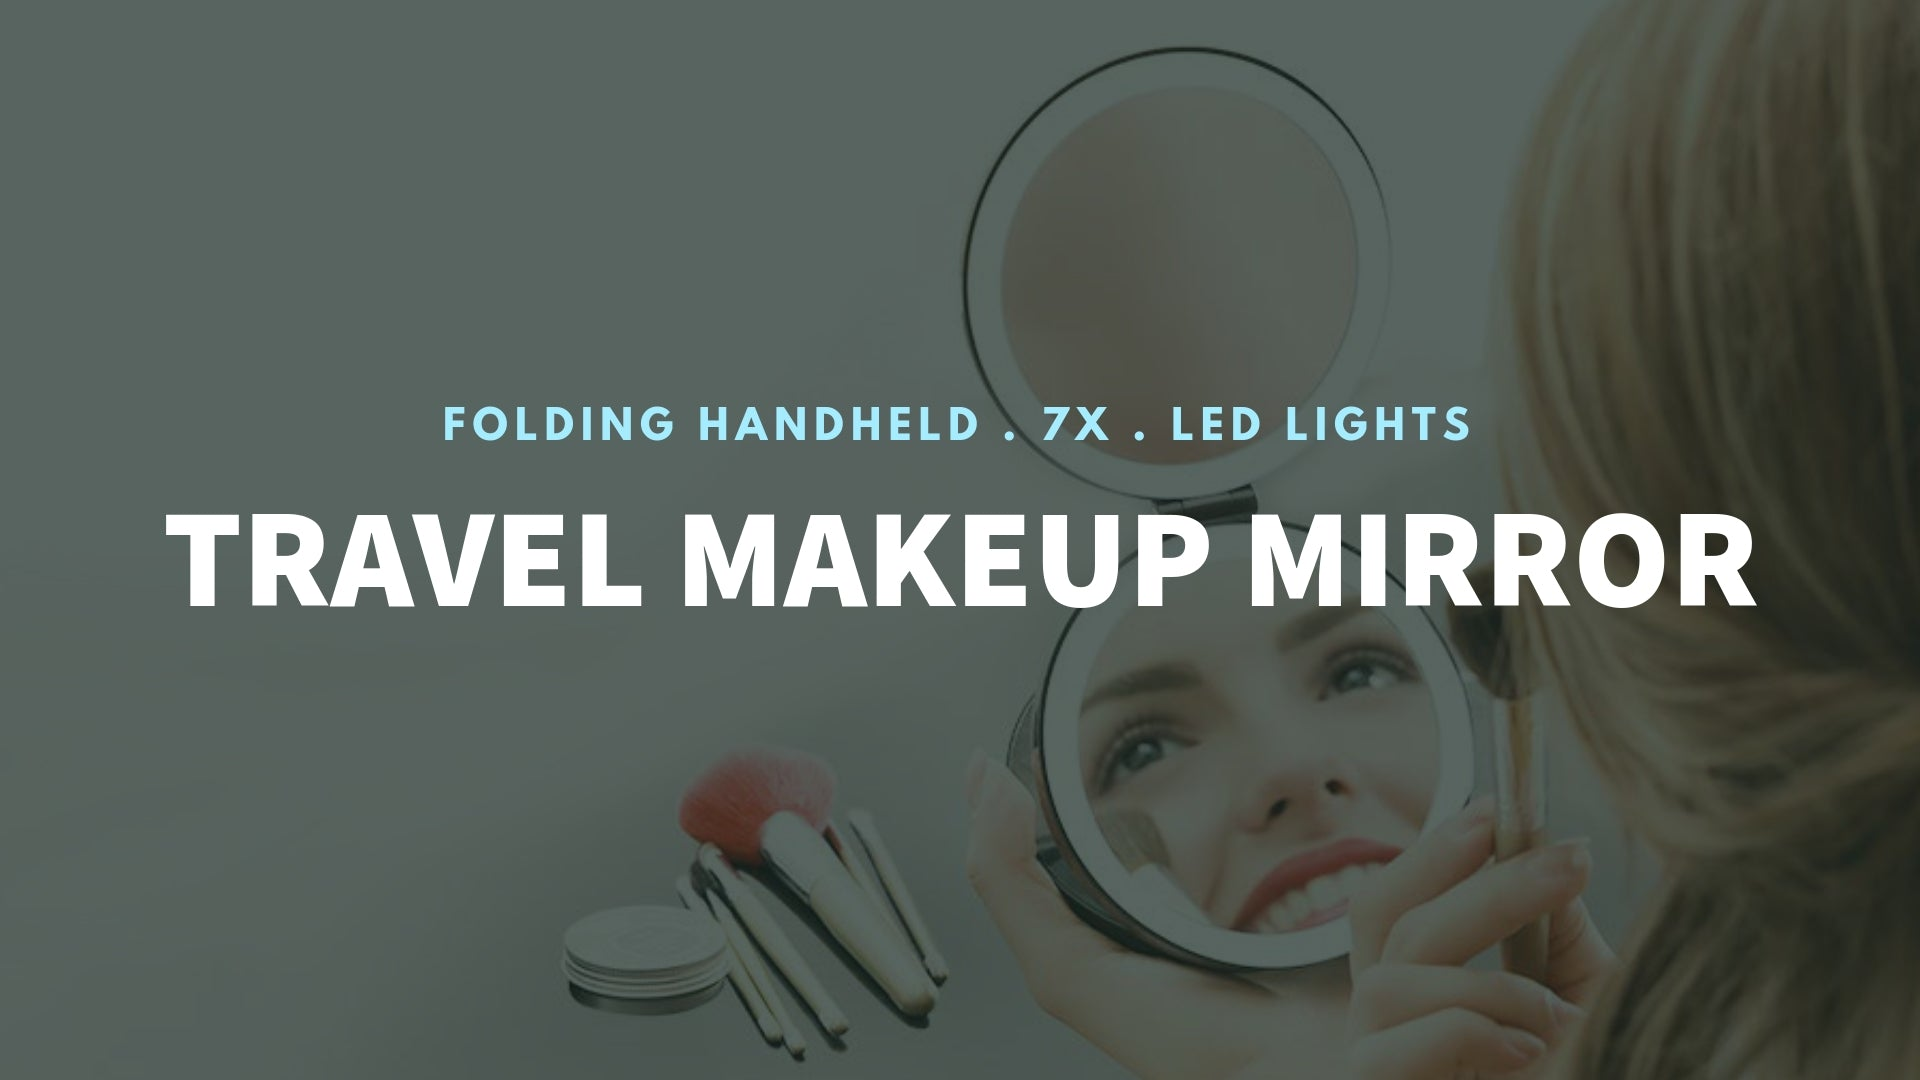 LED Lighted 3-fold Travel Compact Makeup Mirror 1X/7X Magnification magnifying mirror standing makeup magnifying bathroom s with lights trifold battery magnifying glass absolutely lush best hand zadro round makeup jerdon makeup reviews natural makeup estala hollywood vanity fancii travel makeup gala 10x magnifying makeup bestmakeup makeup with lights best ratedmakeup anjou makeup kensie vanity vanity with lights tri fold vanity wall mounted makeup banner - iMartCity